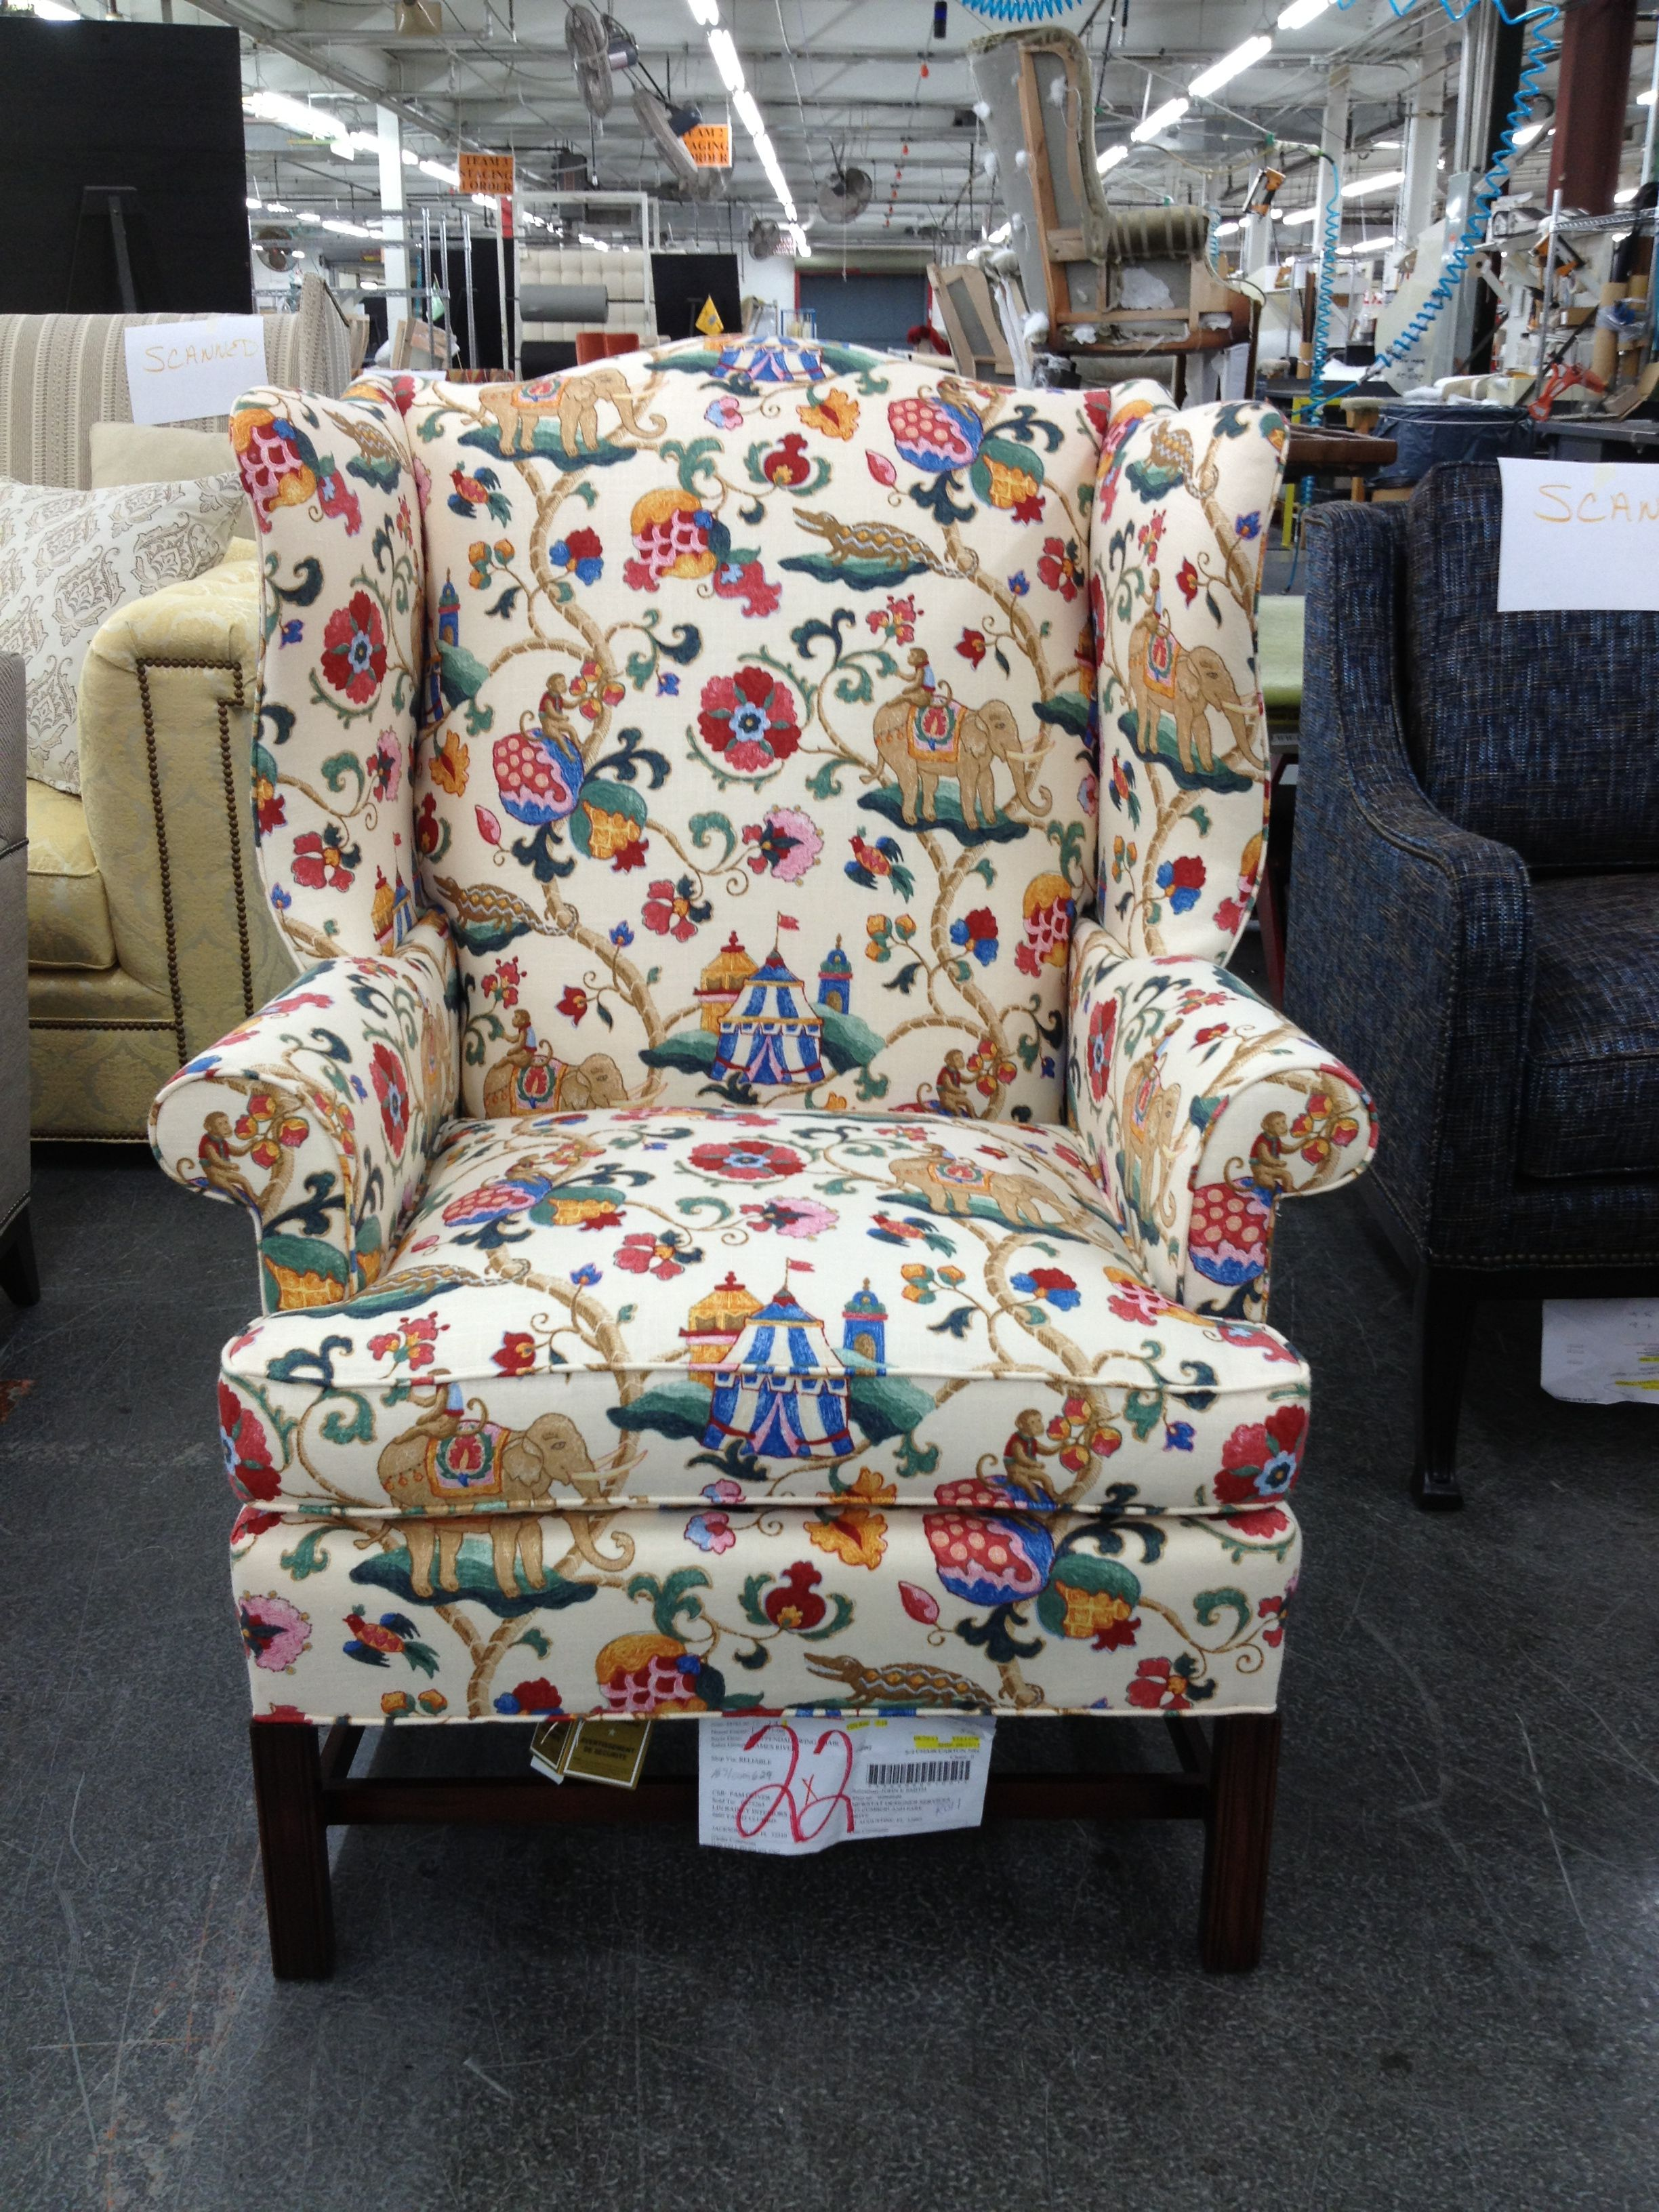 A whimsical COM fabric brings this James River Collection